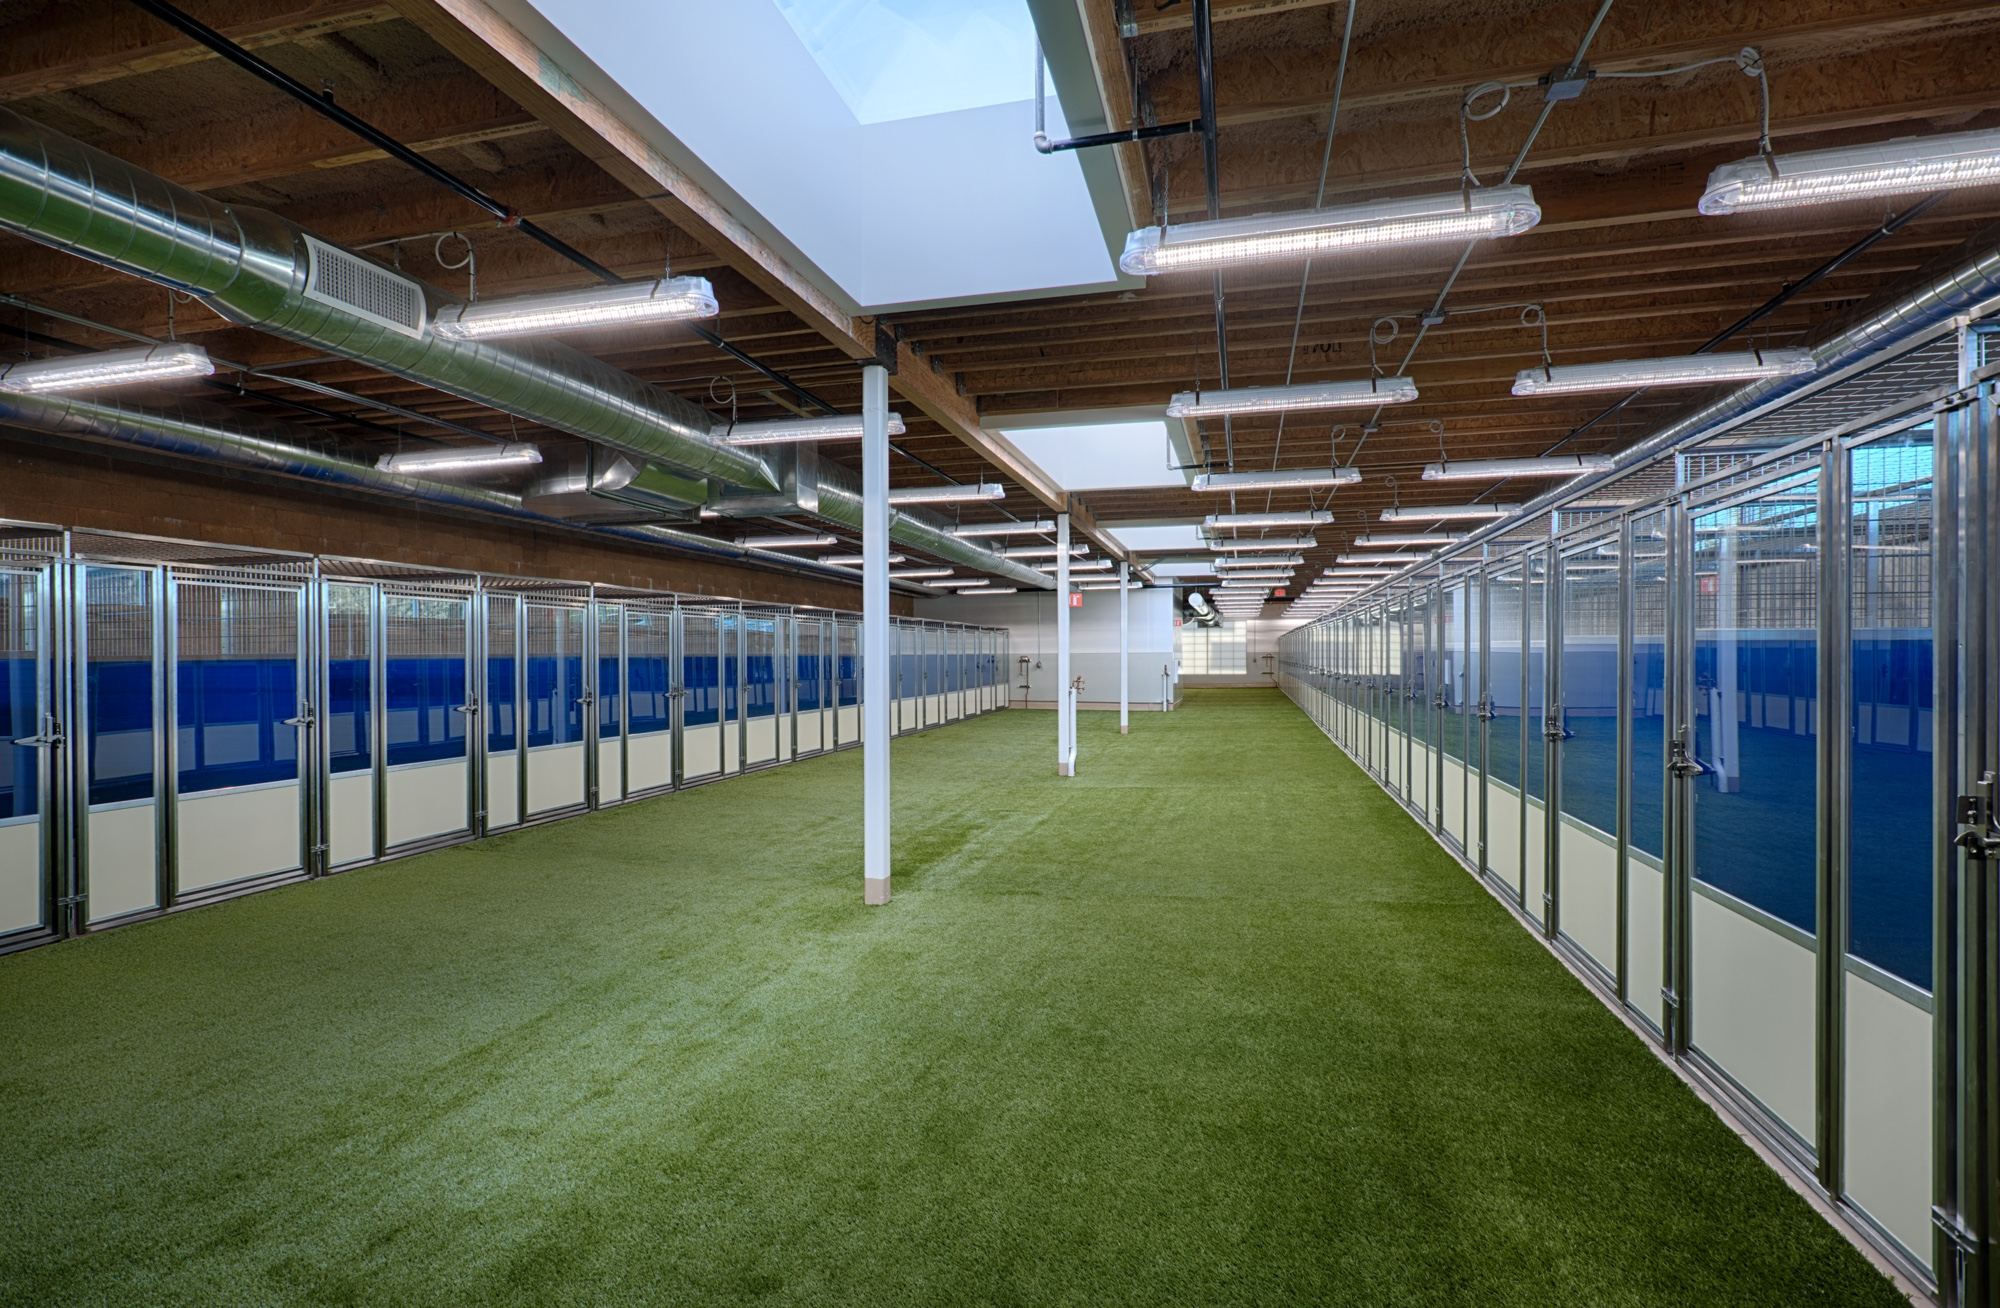 3.Enclosed Kennel with Skylights